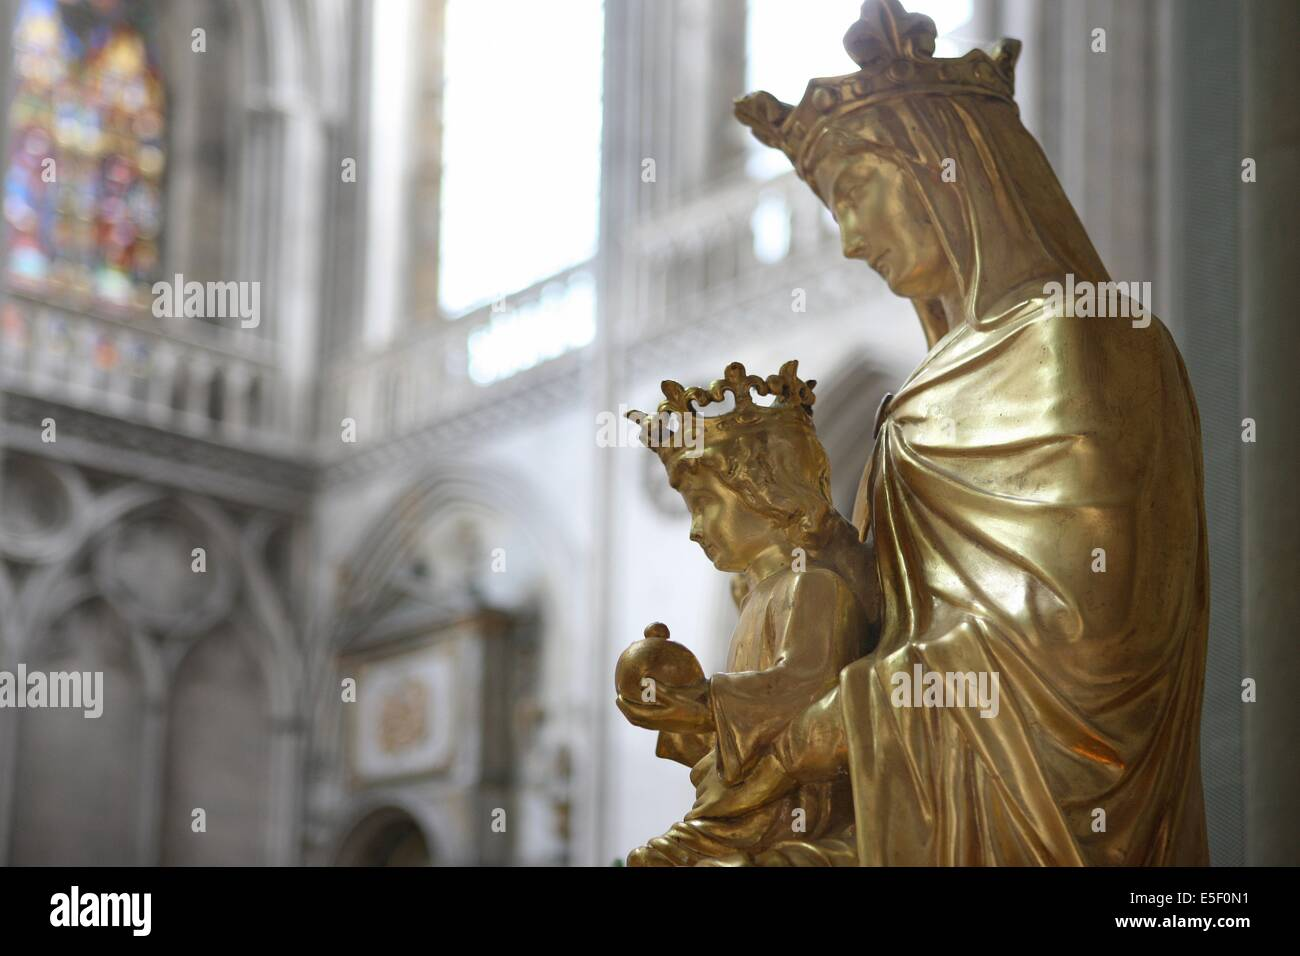 France, Basse Normandie, calvados, bessin, bayeux, cathedrale, decor, vierge a l'enfant, nef, - Stock Image